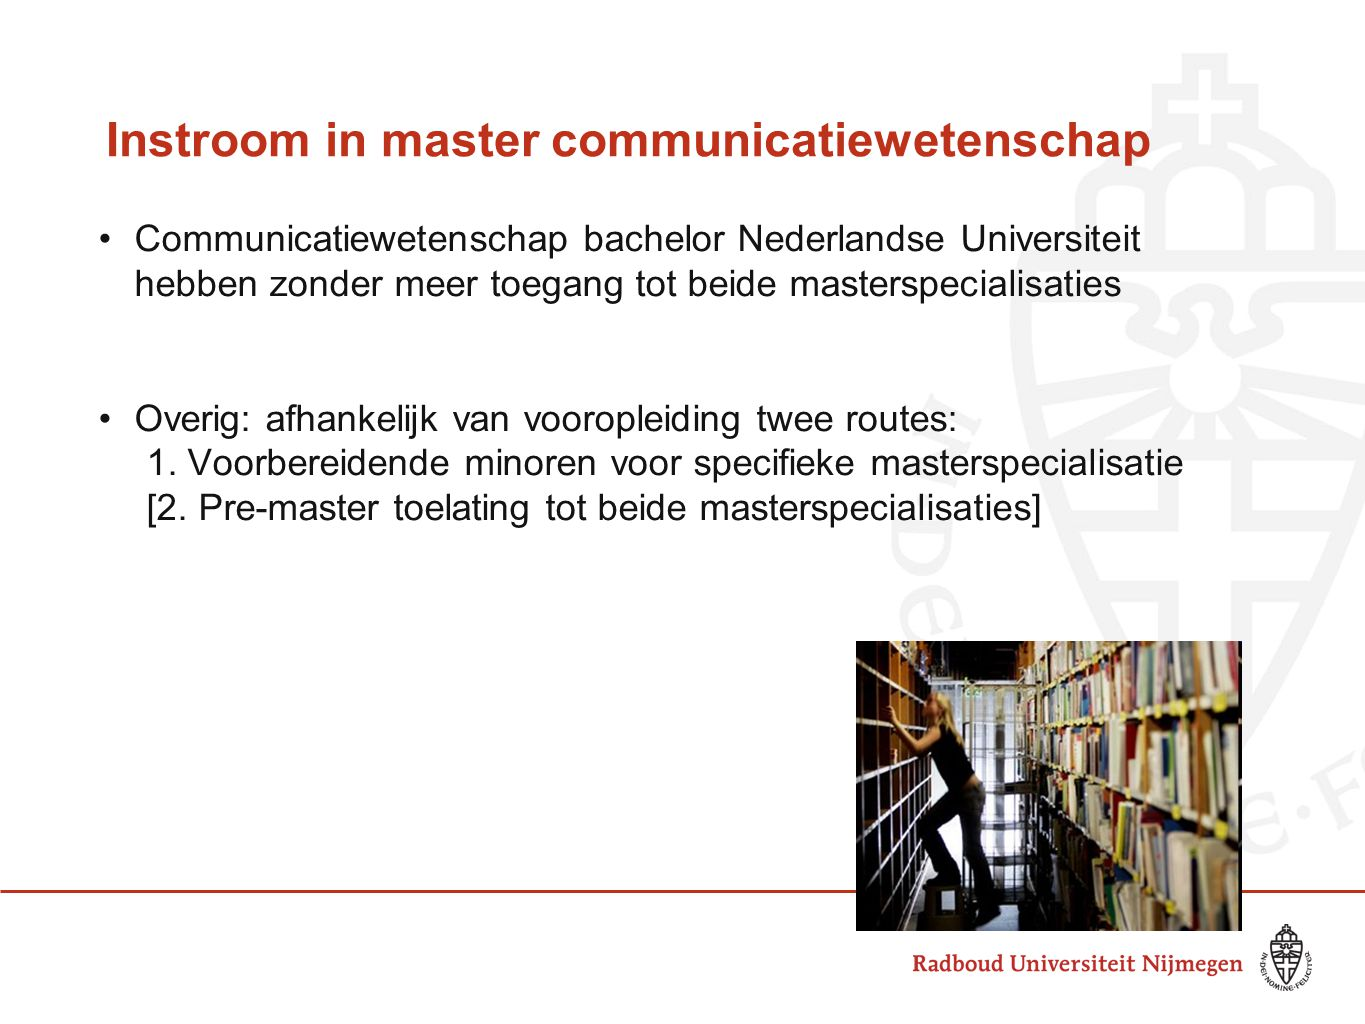 Instroom in master communicatiewetenschap